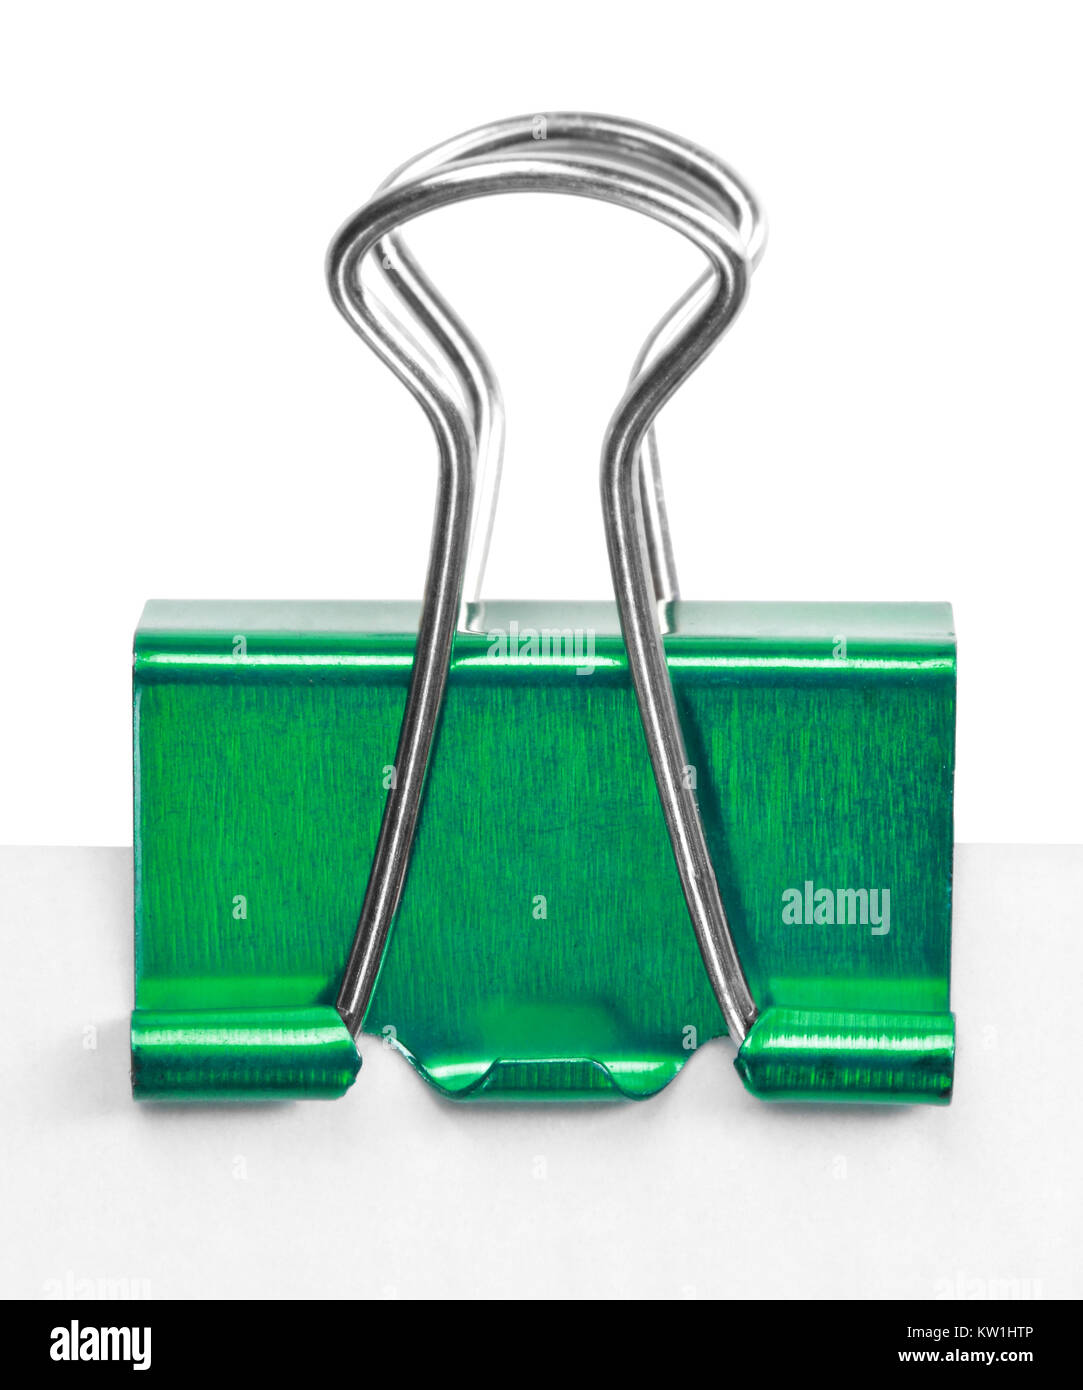 Close up of a green binder clip - Stock Image